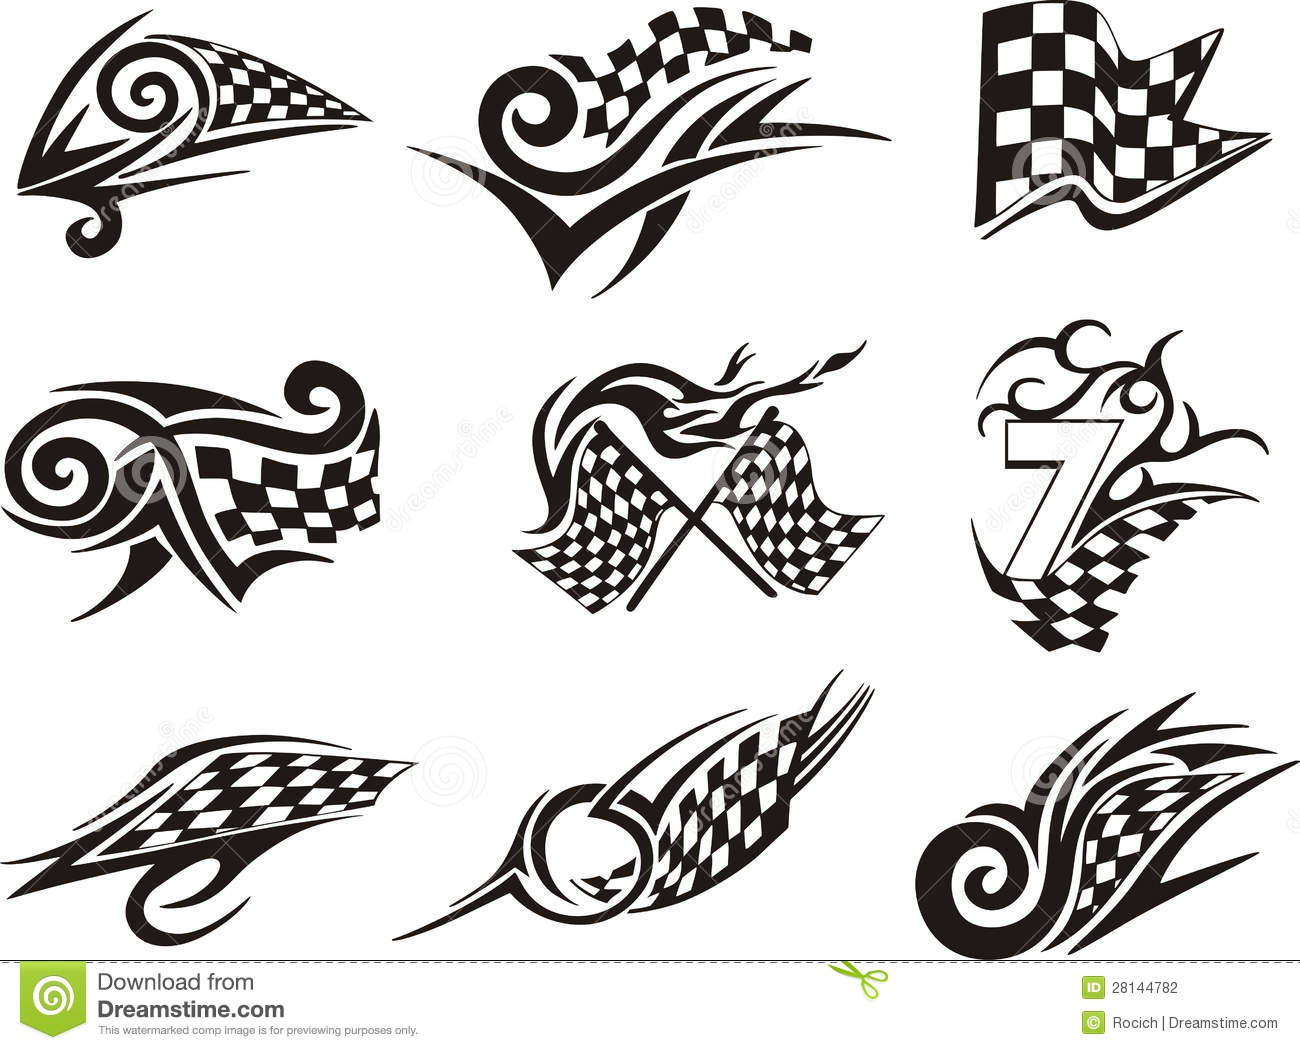 Race Flag Icon Finish Symbol Flat 279157049 as well Racing Flag Clipart 28426 likewise The Hebrew Alphabet Aleph Bet together with Racing Flag besides Cars Birthday. on nascar flags clip art